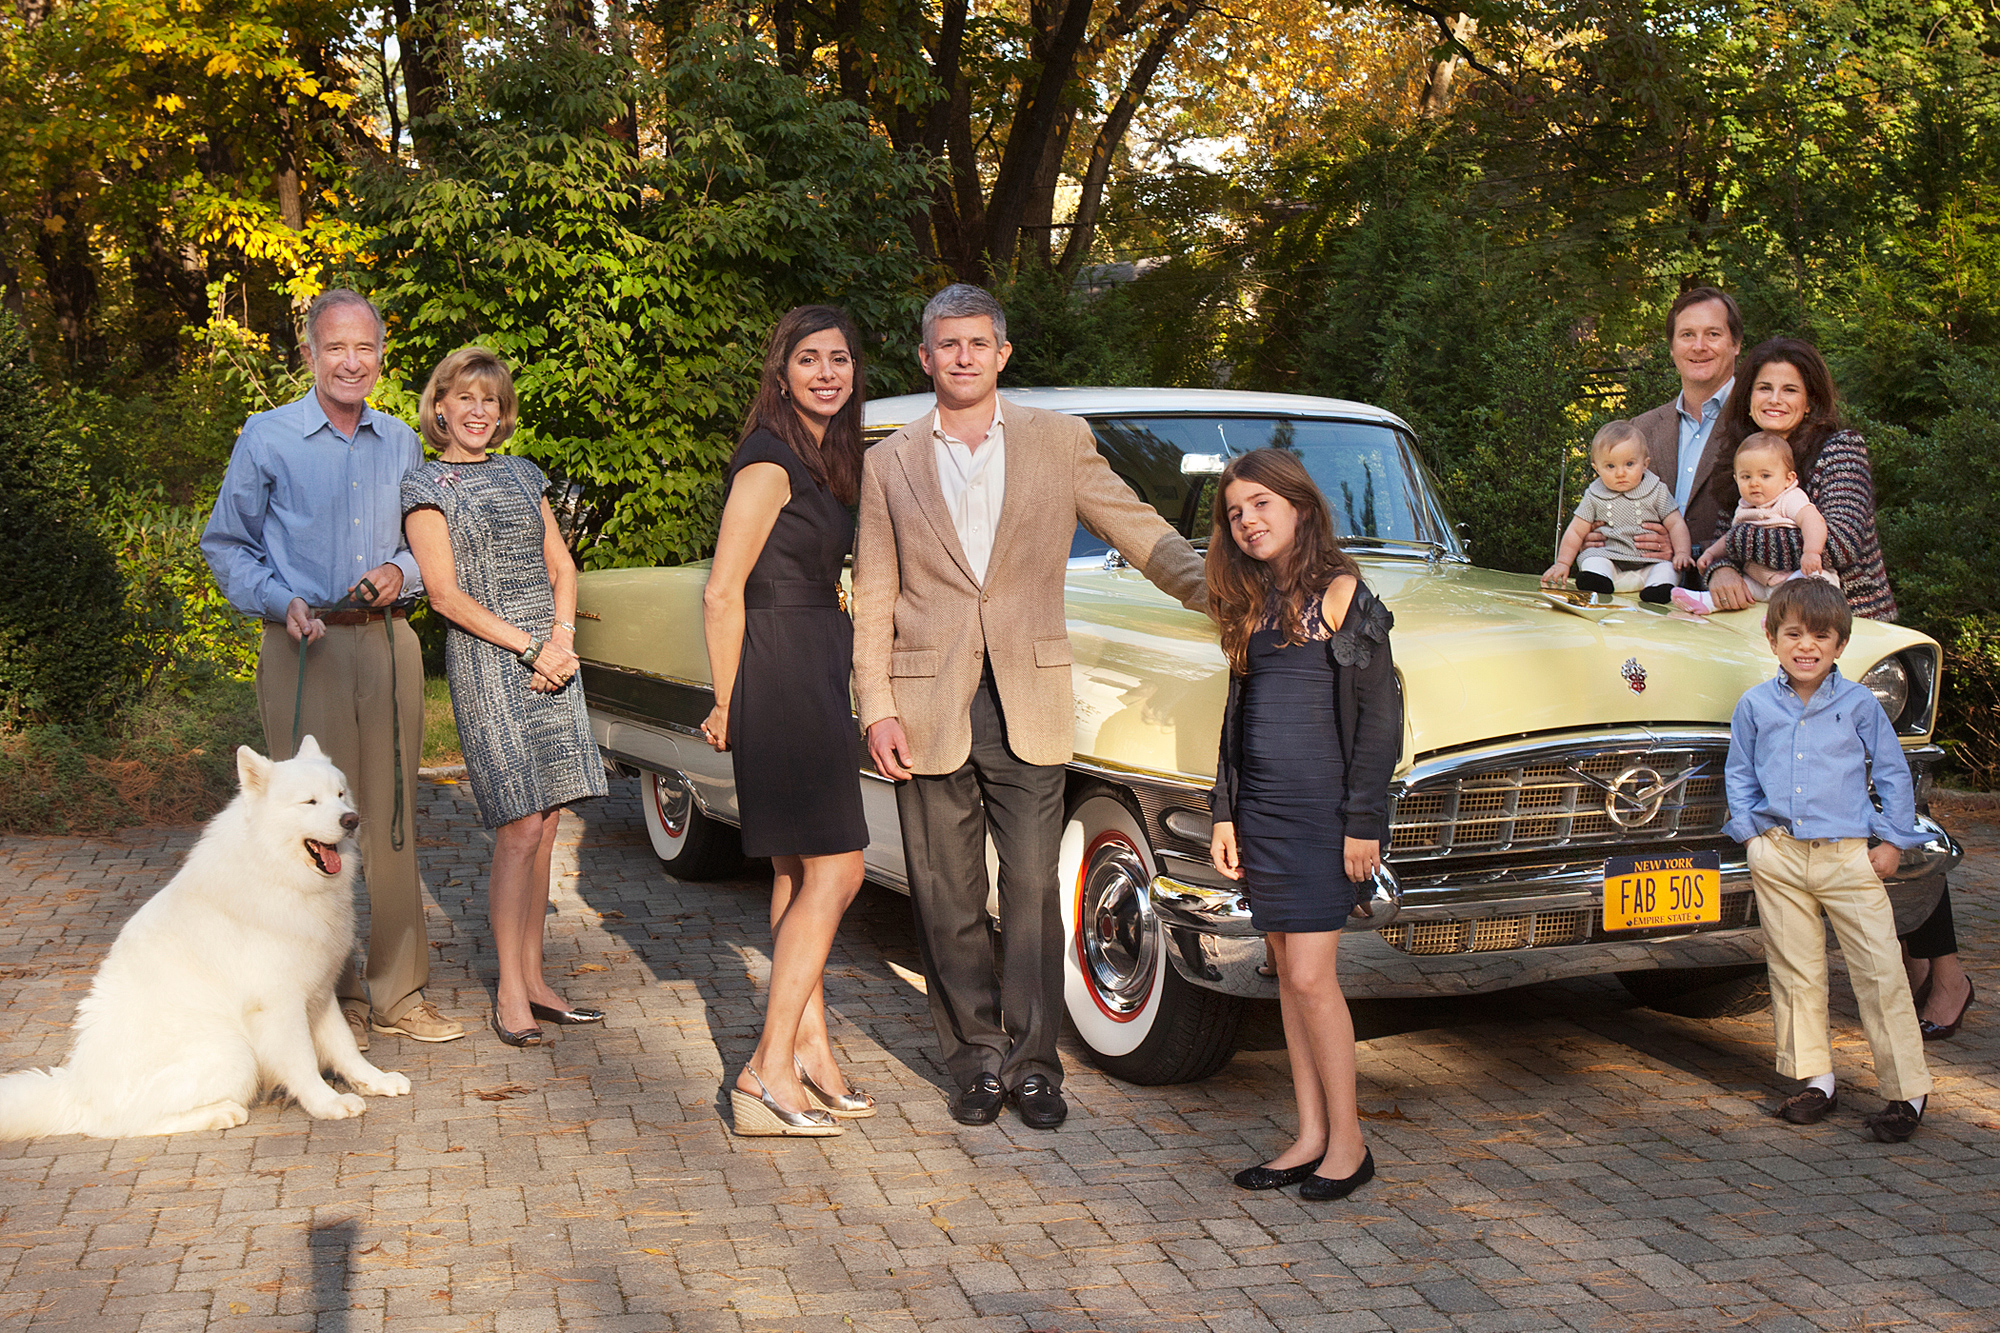 Extended Family Gathered in the Driveway of their Hamptons Summer Home